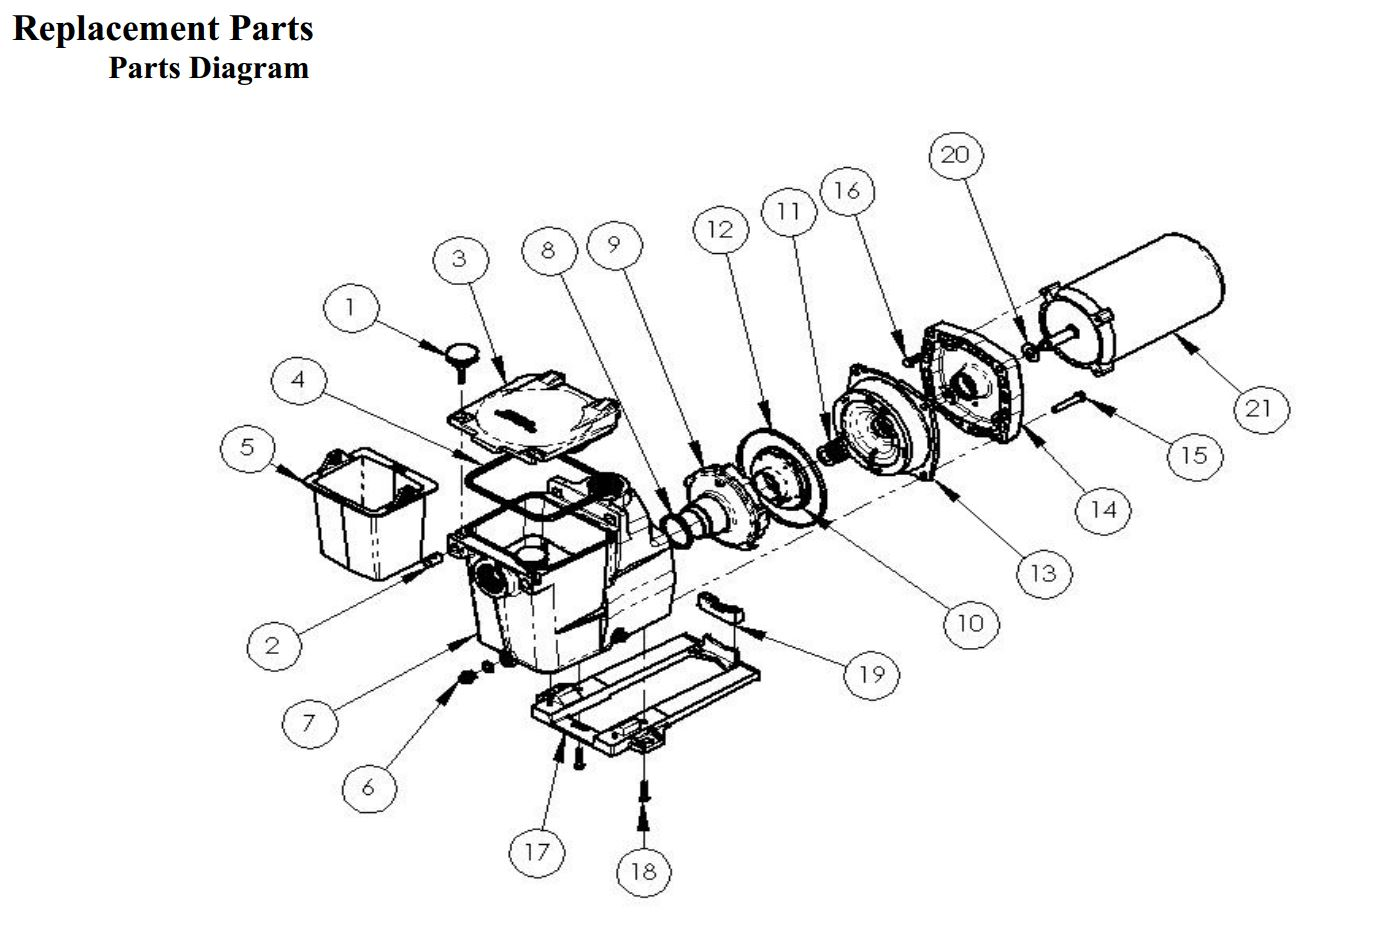 Submersible Pump Wiring Diagram Pdf: Amazon.com : Hayward SP2610X15 Super Pump 1.5 HP Pool Pump rh:amazon.com,Design